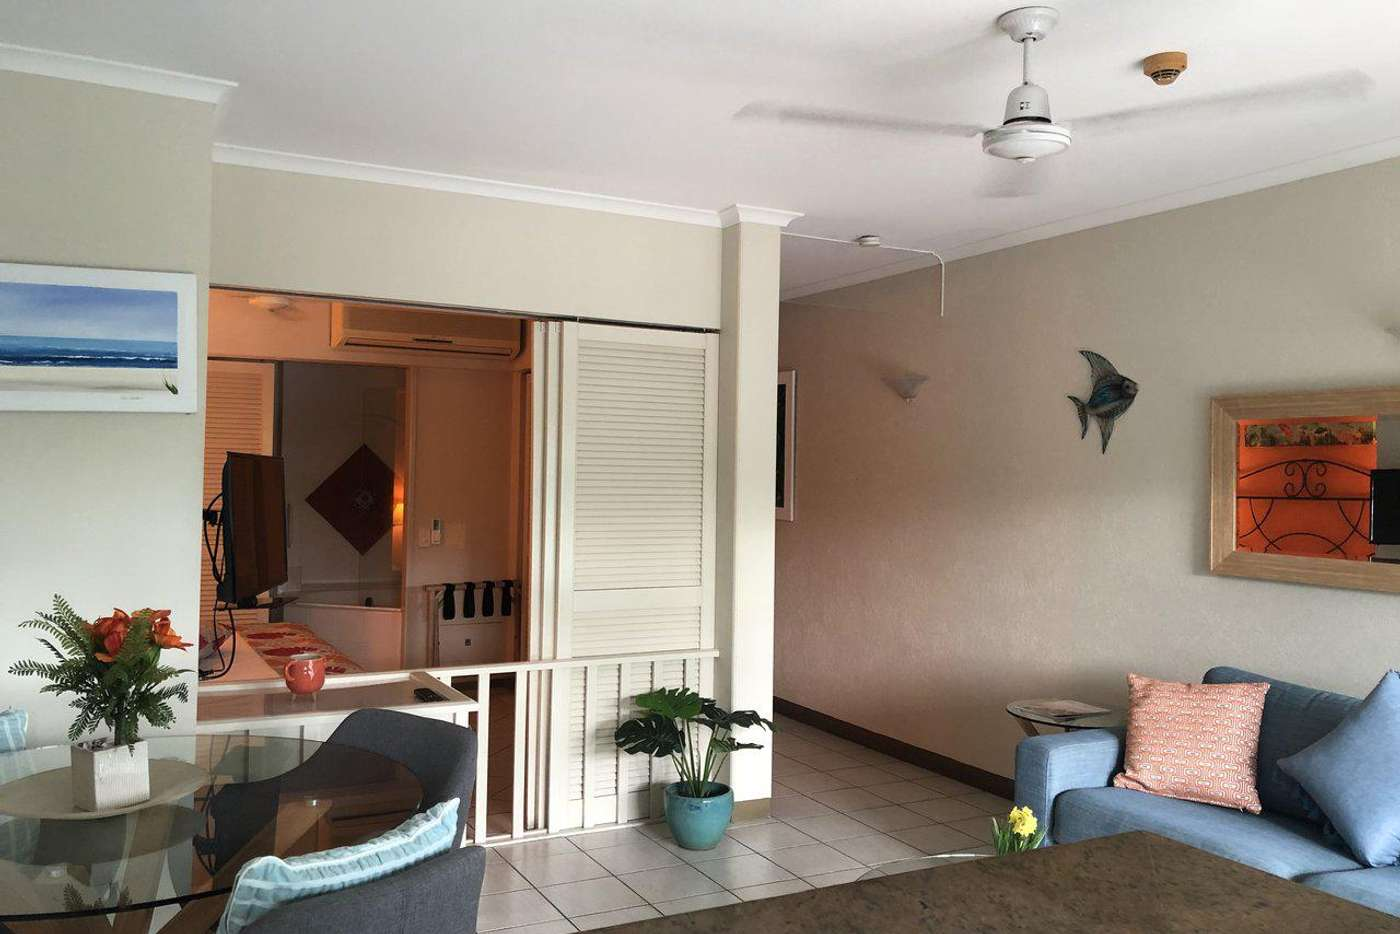 Main view of Homely apartment listing, 19/34 Macrossan Street, Port Douglas QLD 4877